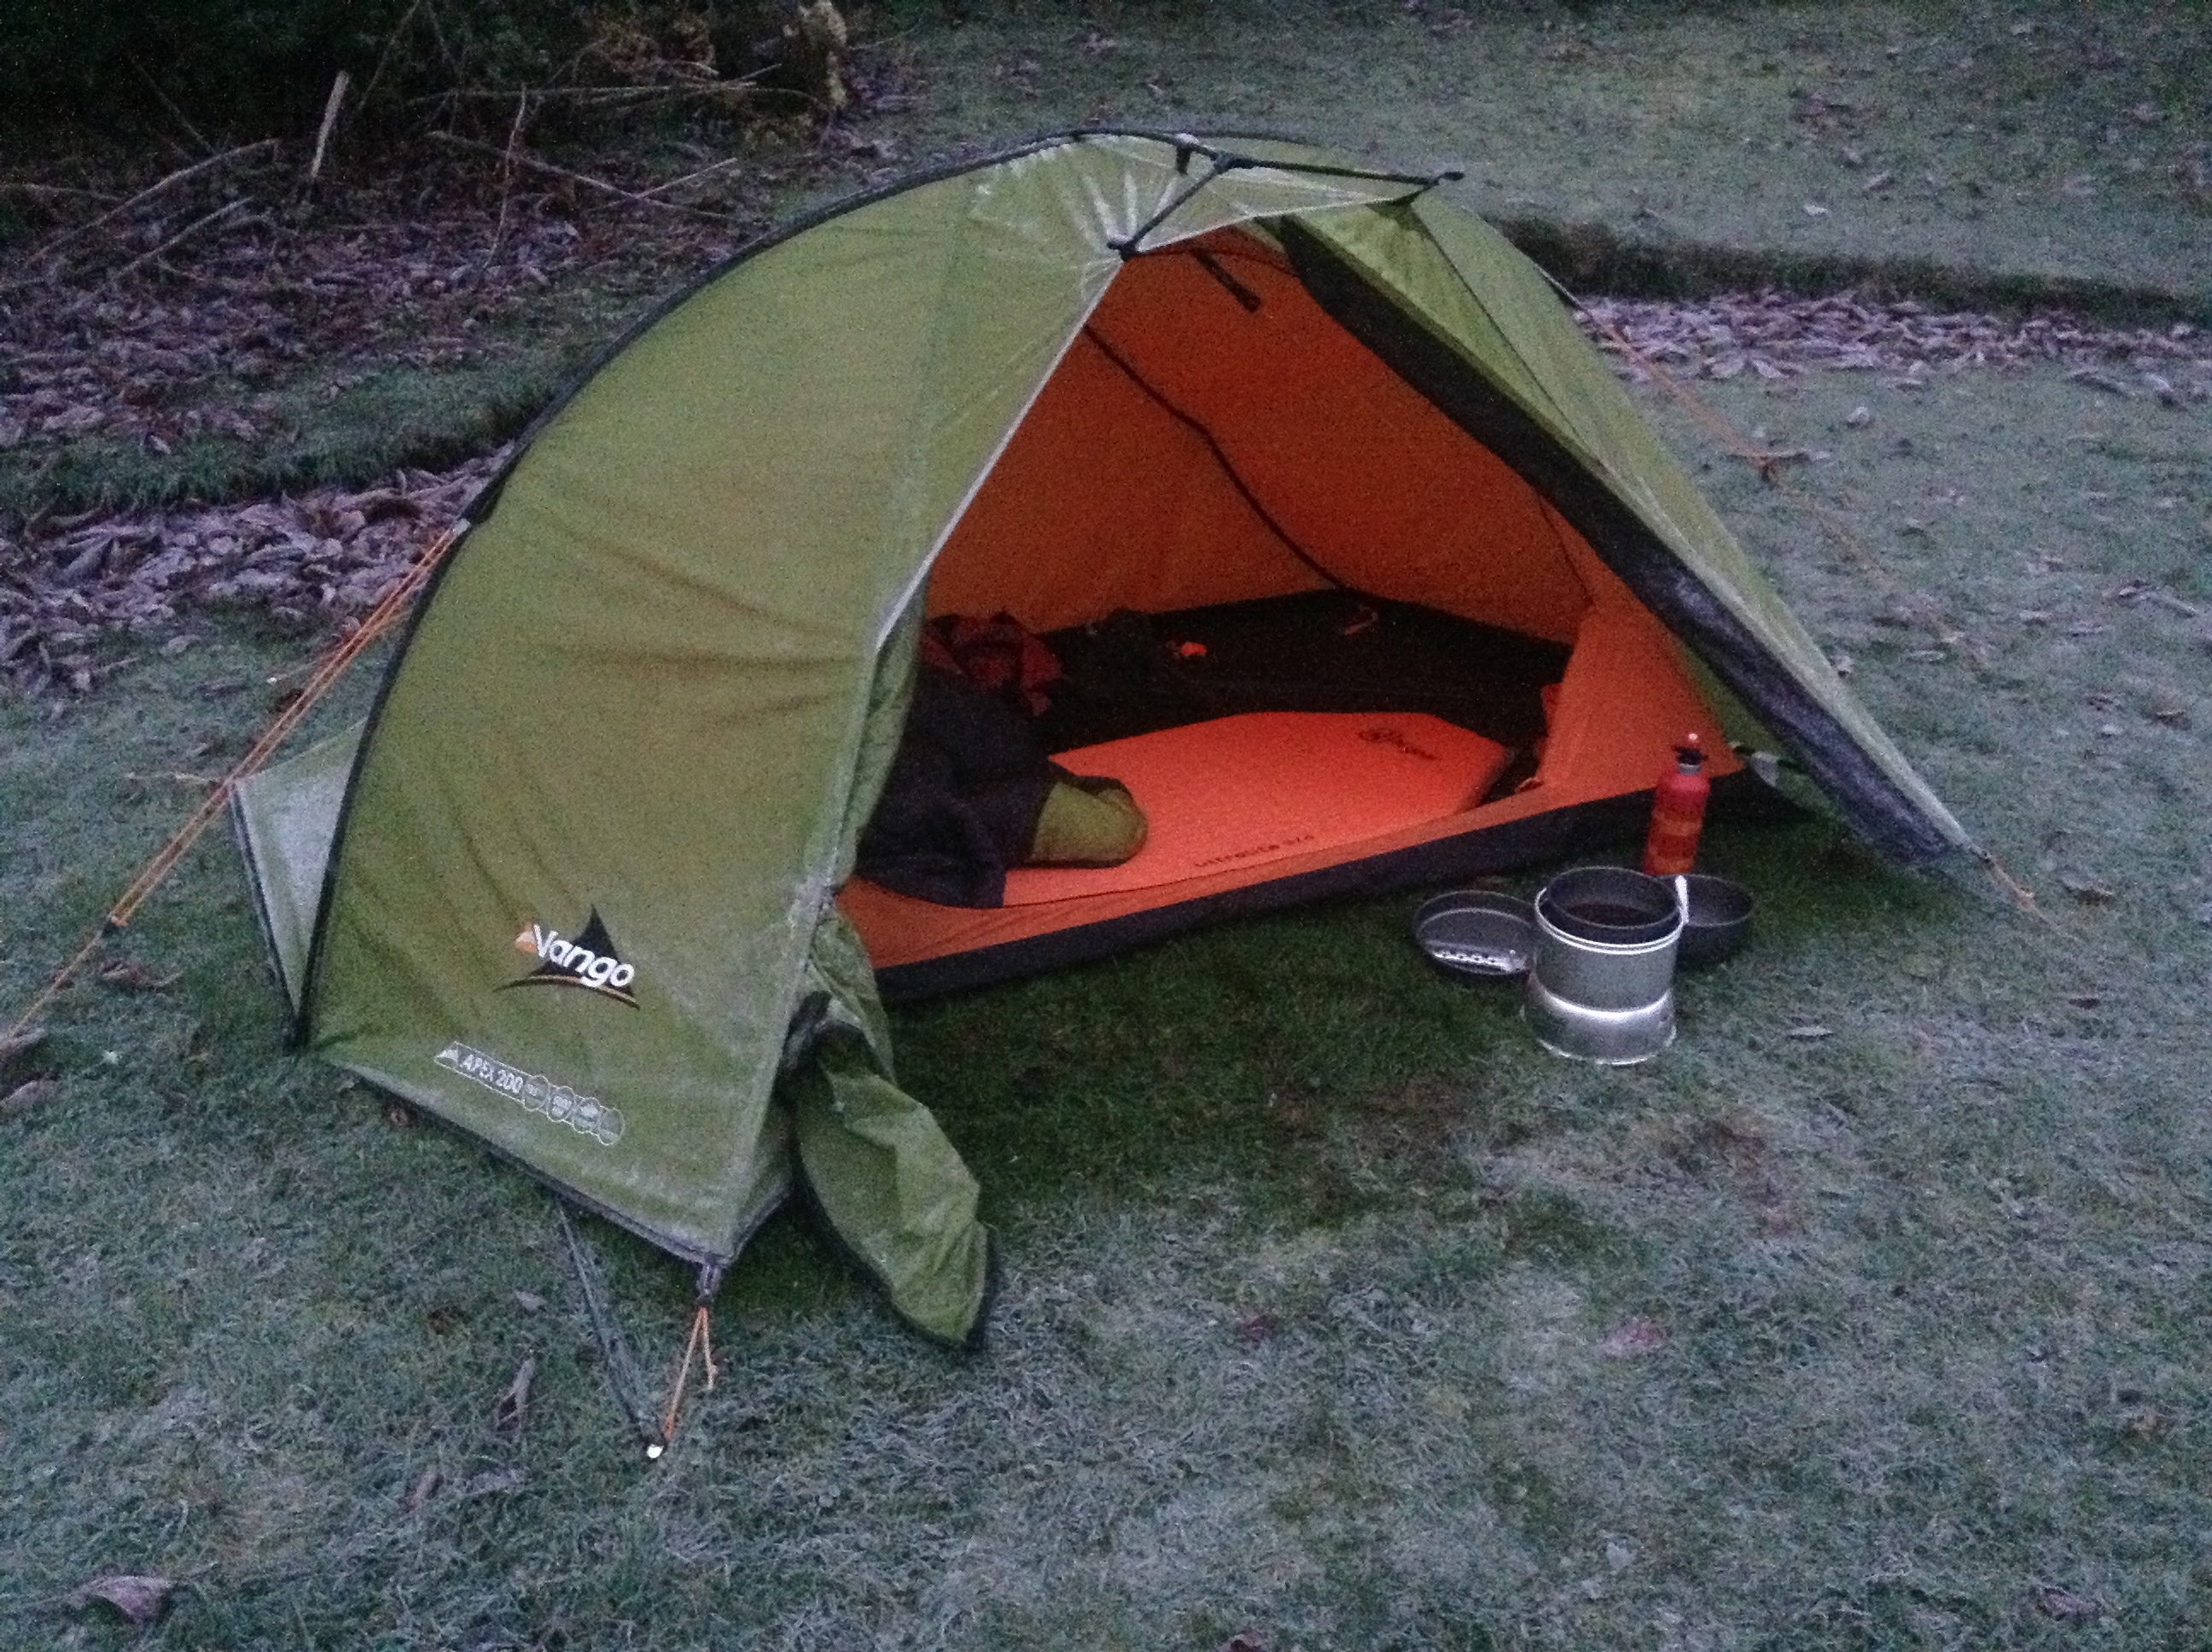 Microadventure – Camping in the Garden at -4 Celsius